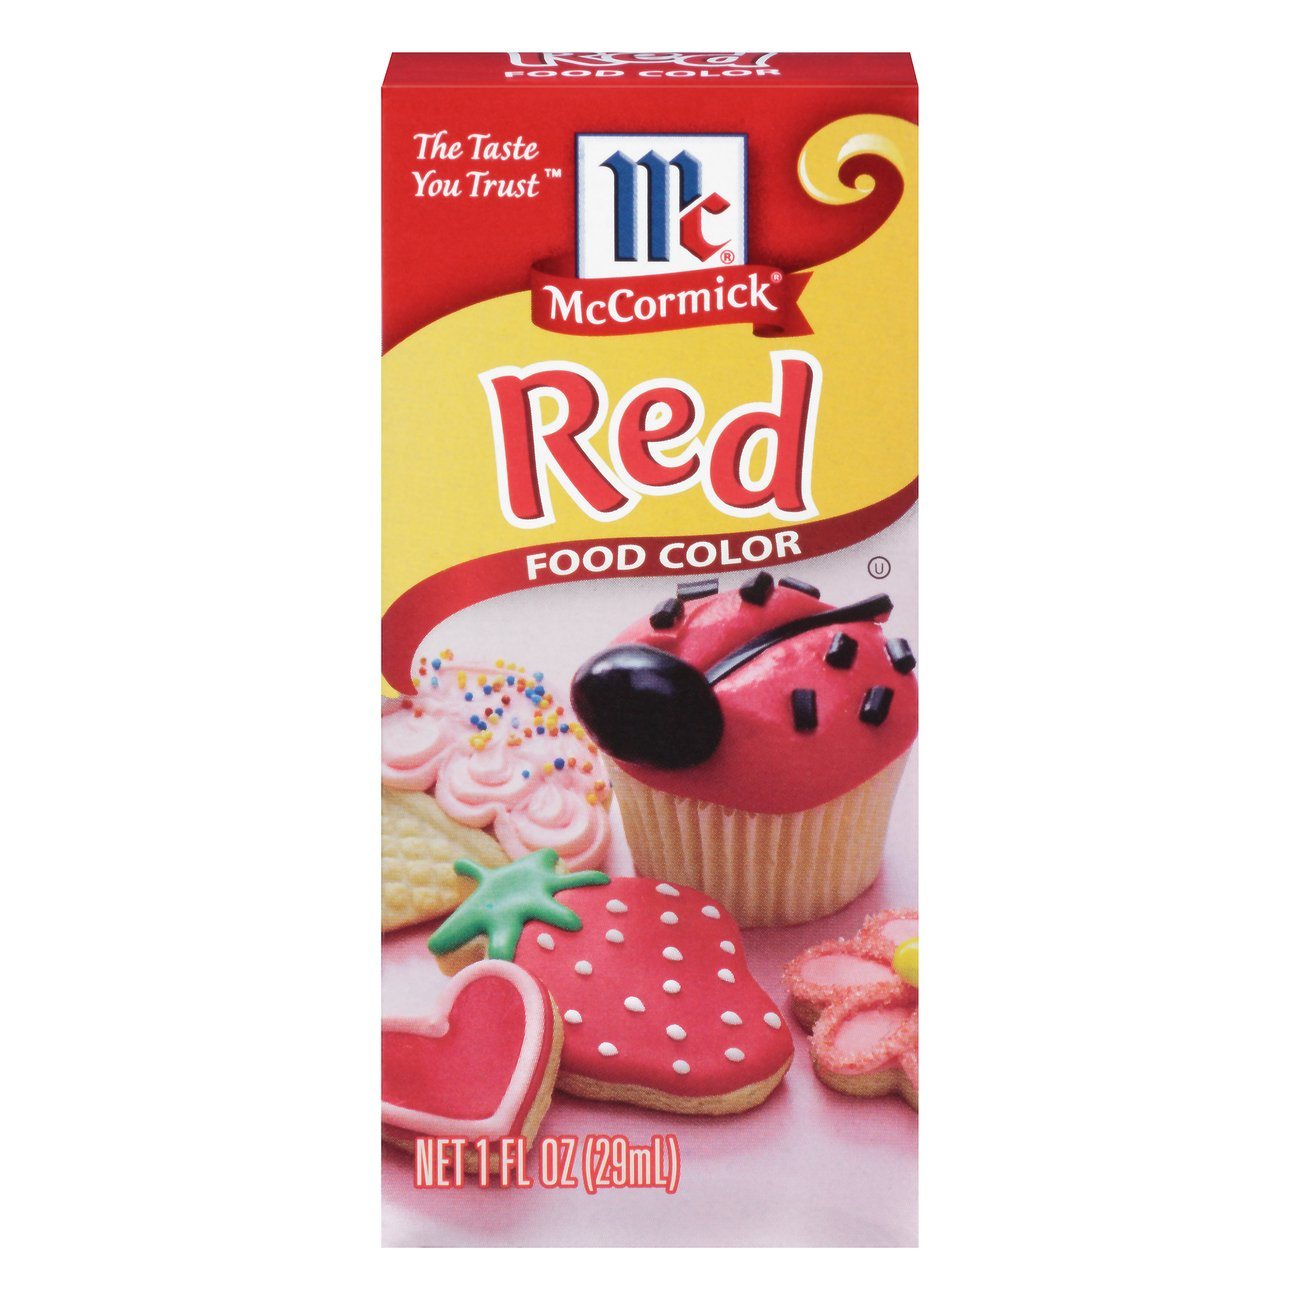 McCormick Red Food Color - Shop Extracts at HEB